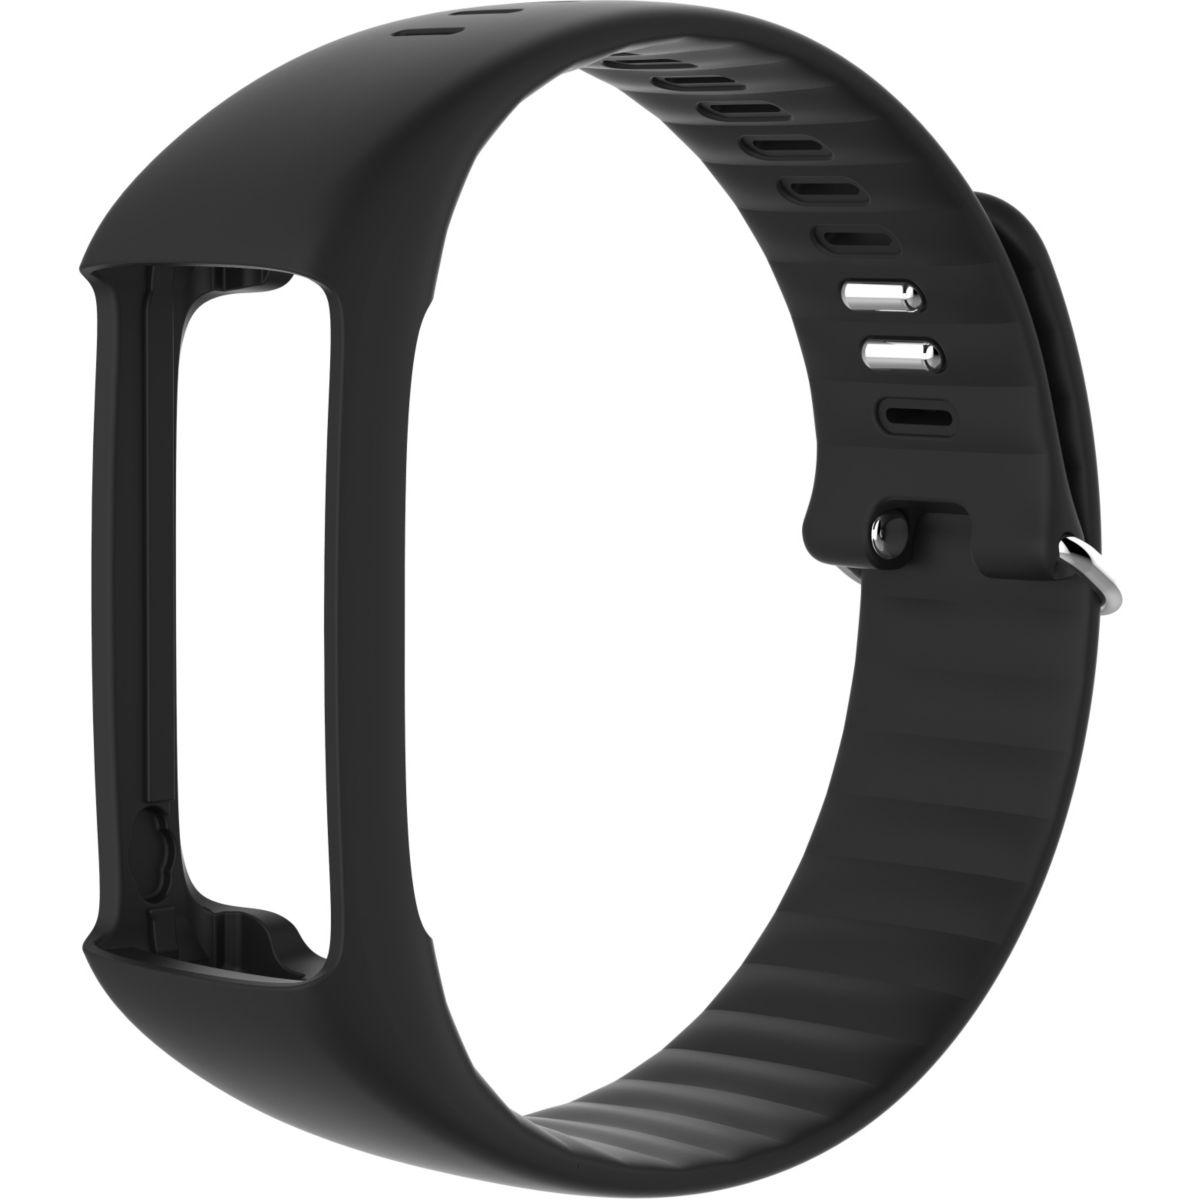 Bracelet montre polar a360 noir l - 5% de remise : code pam5 (photo)